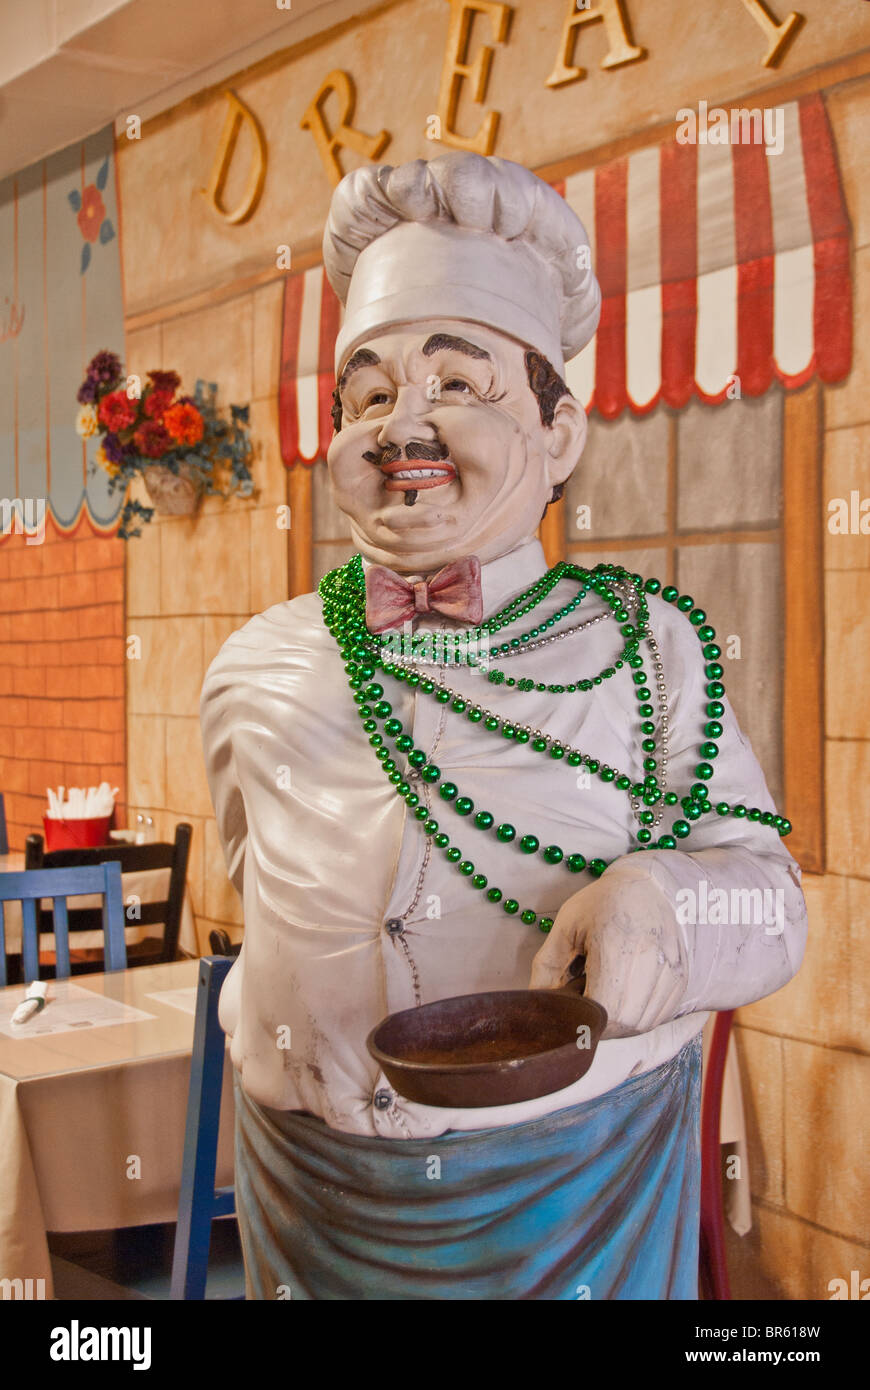 Life-size figure of a chef in 'Downtowner's on Dauphin' Cafe in Mobile, Alabama, USA - Stock Image